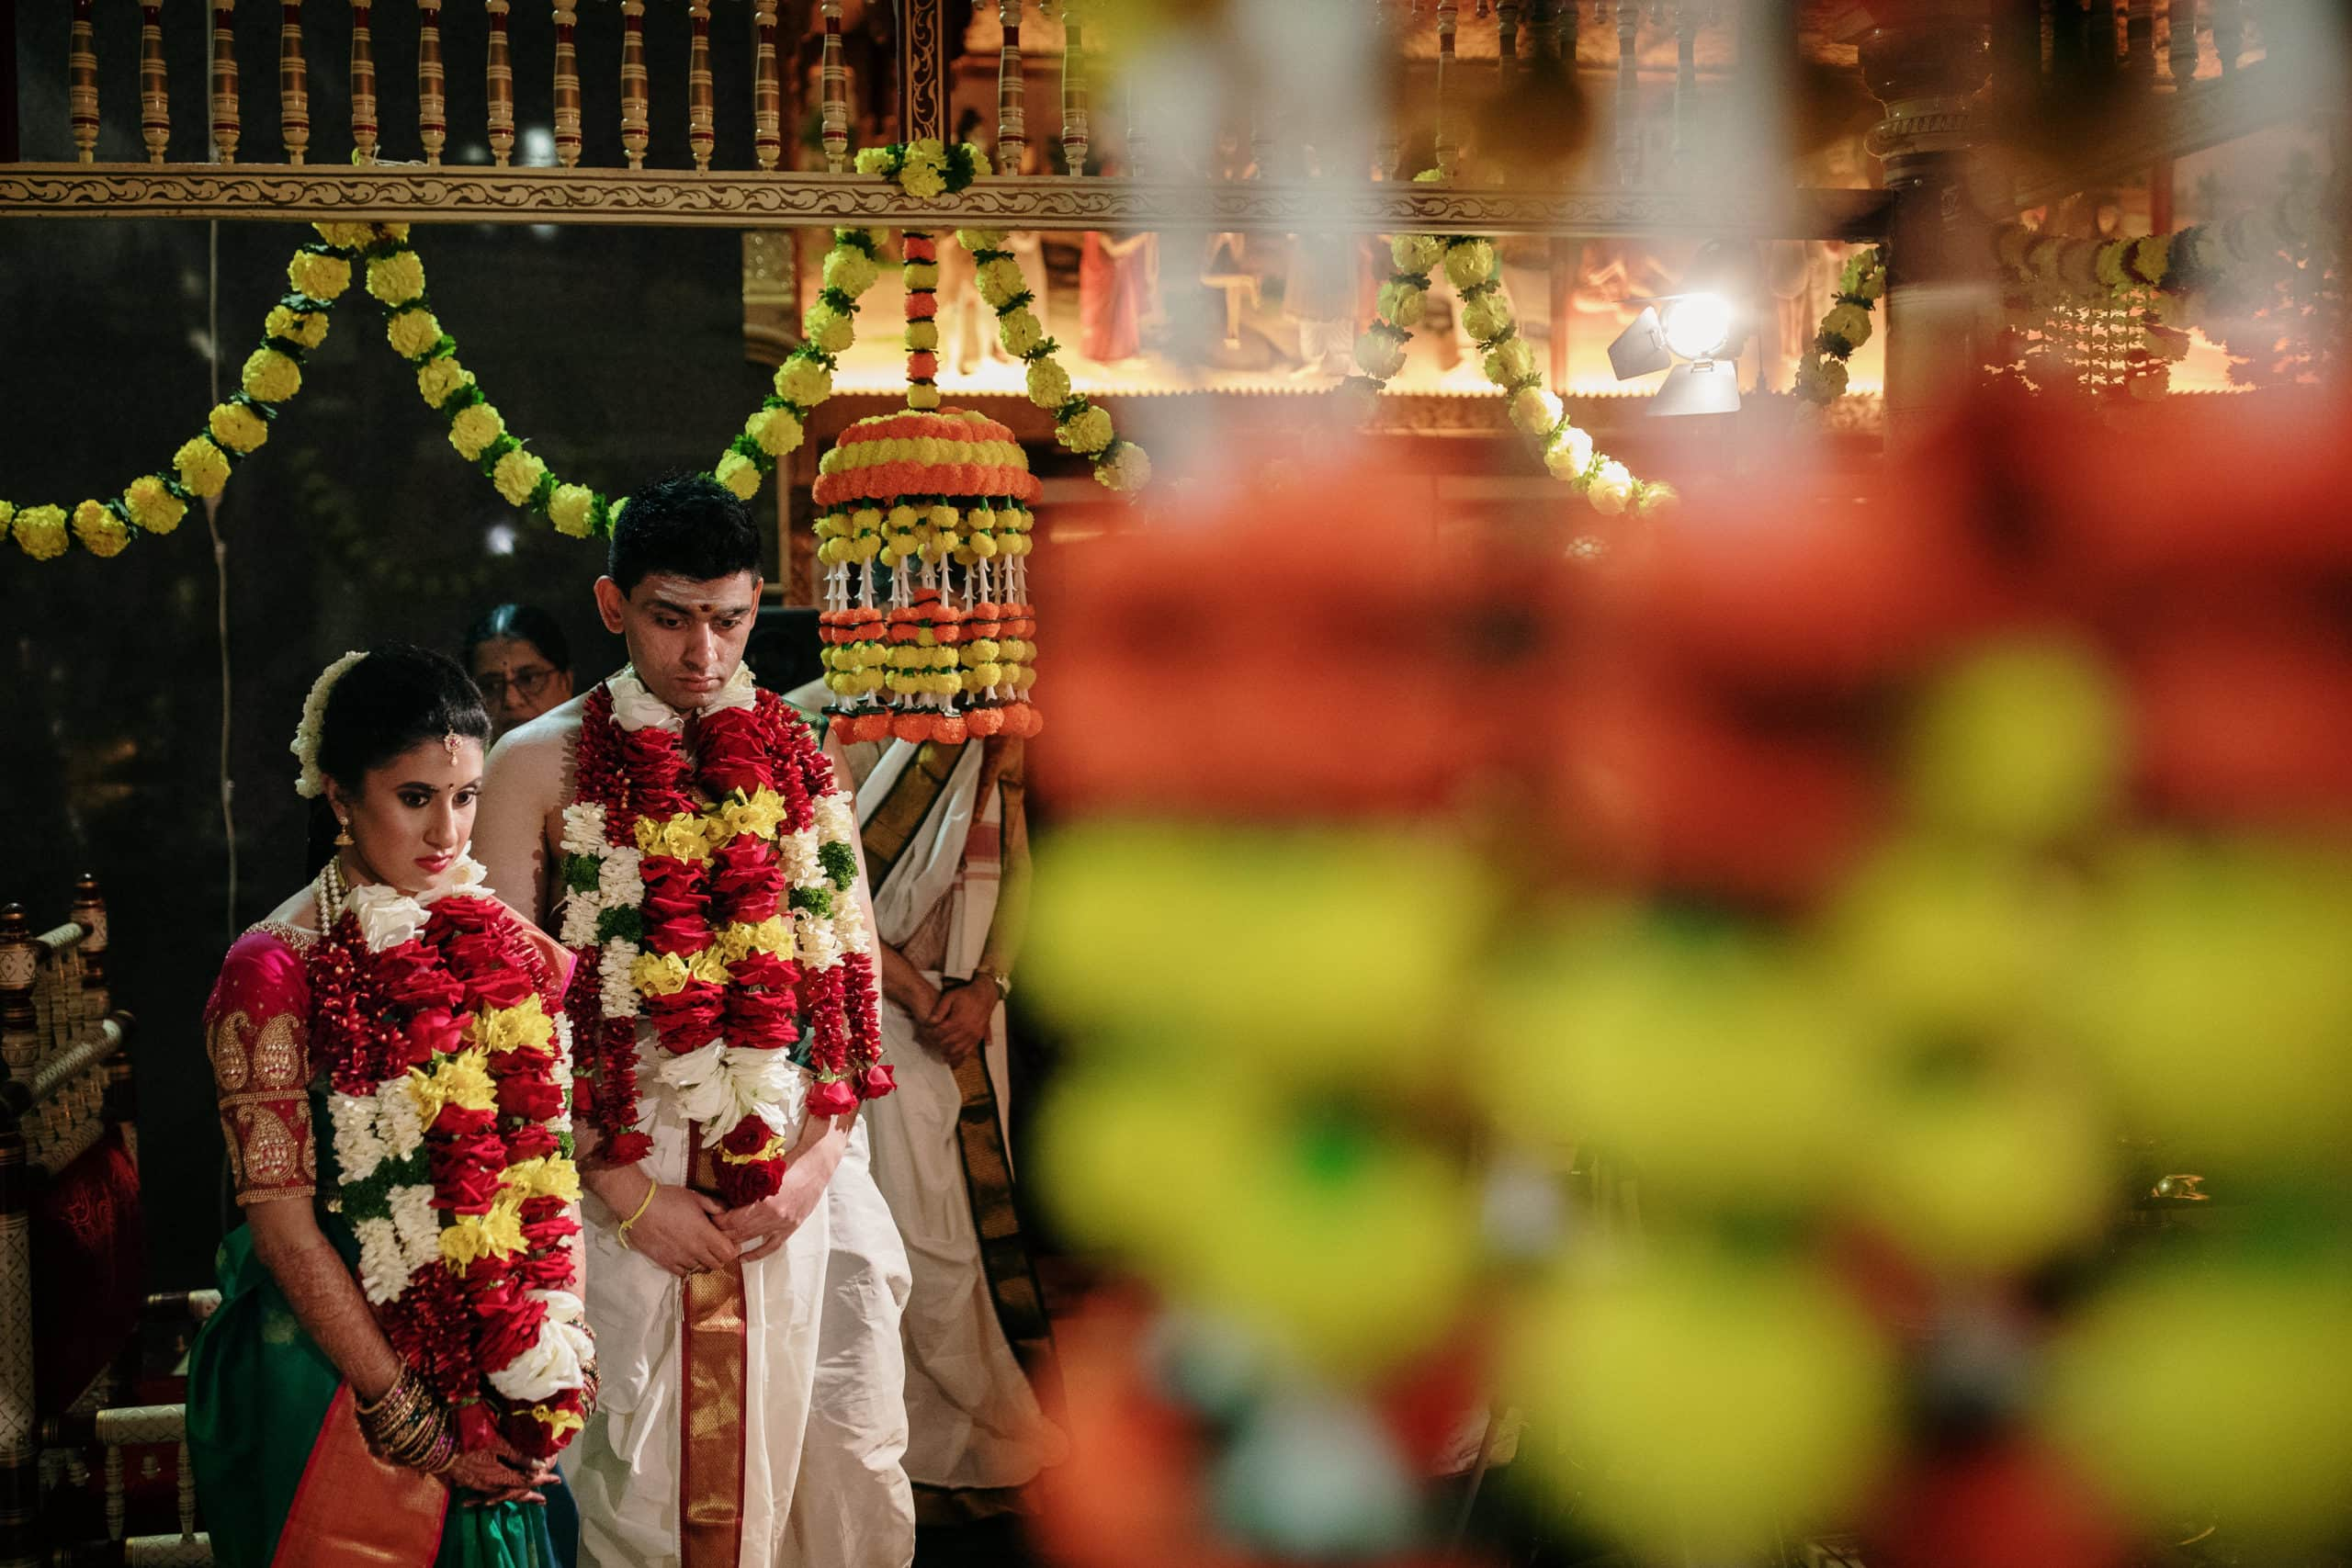 Shree swaminarayan temple wedding